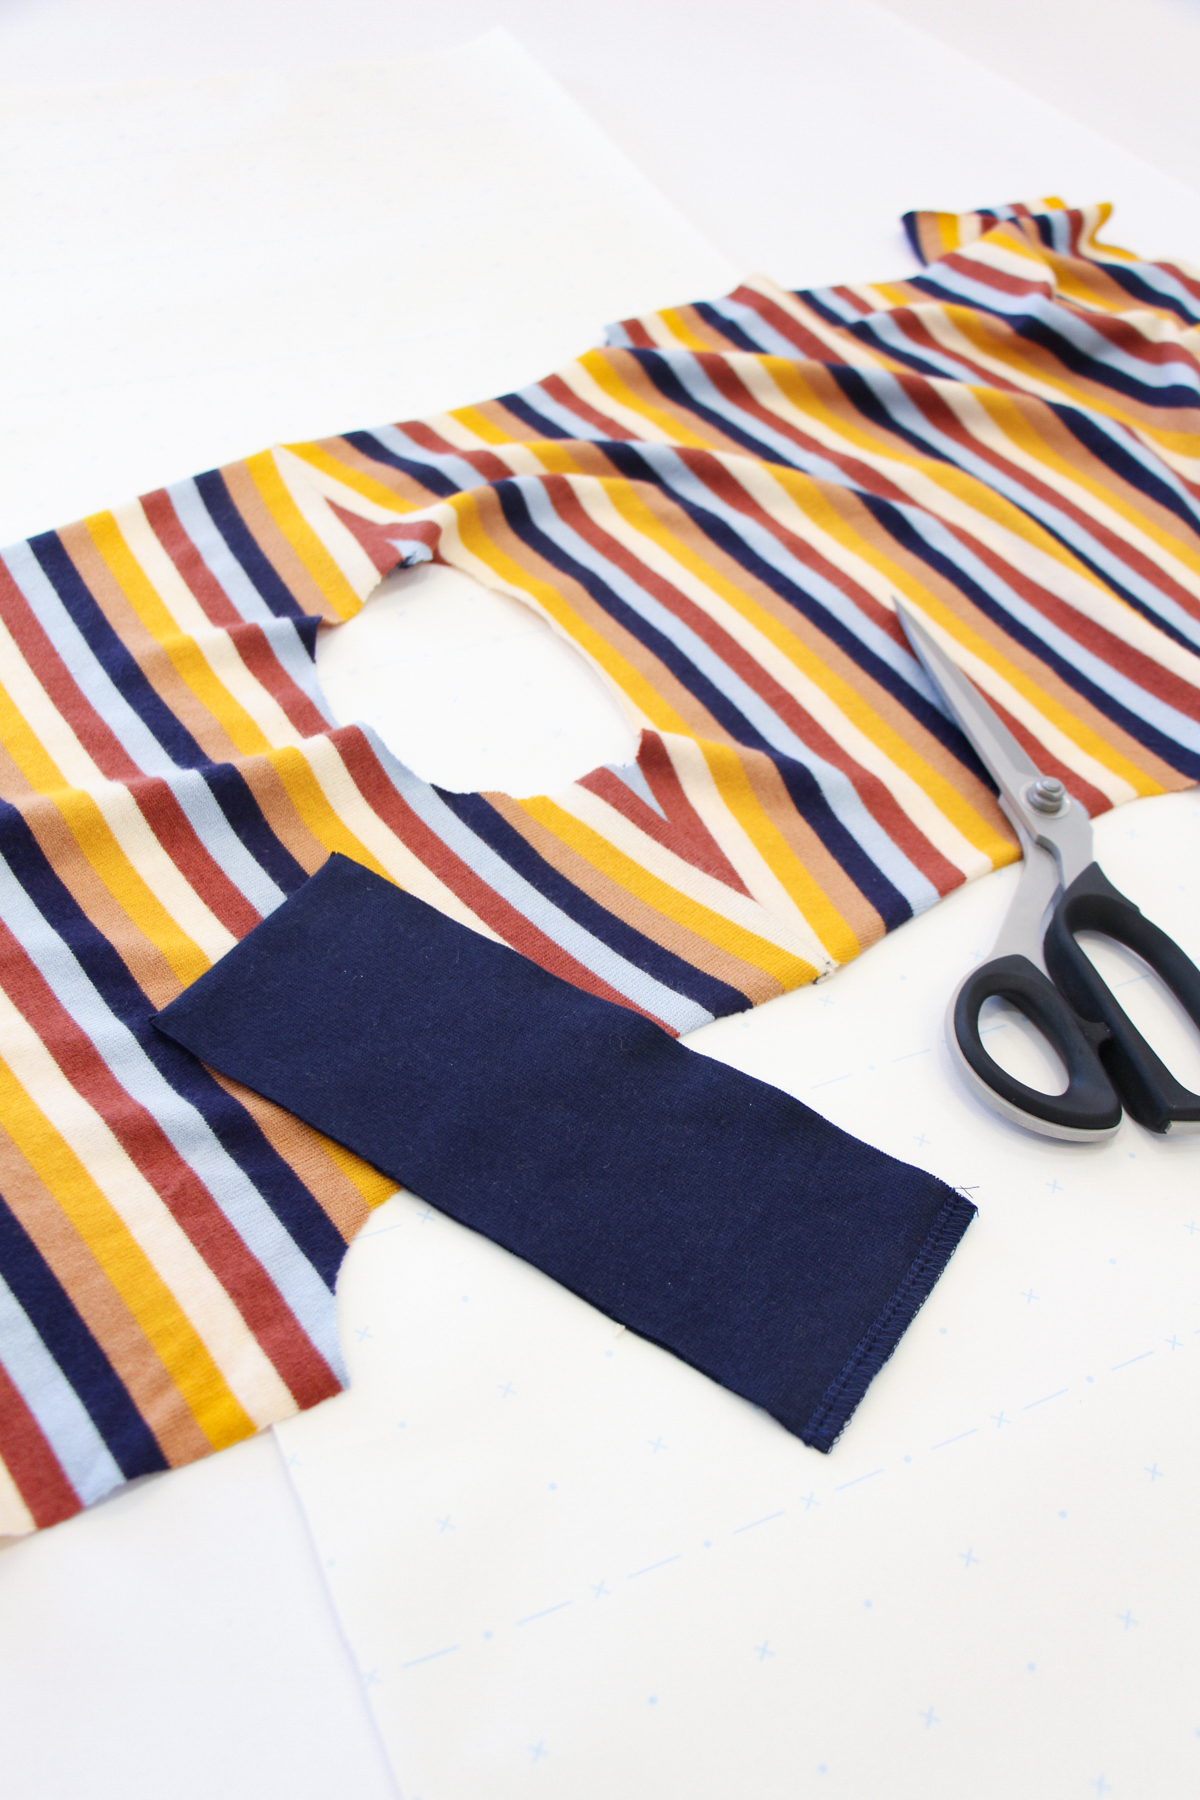 How To Make A Rowan Ringer Tee - Method 3 - The Traditional Neckbind